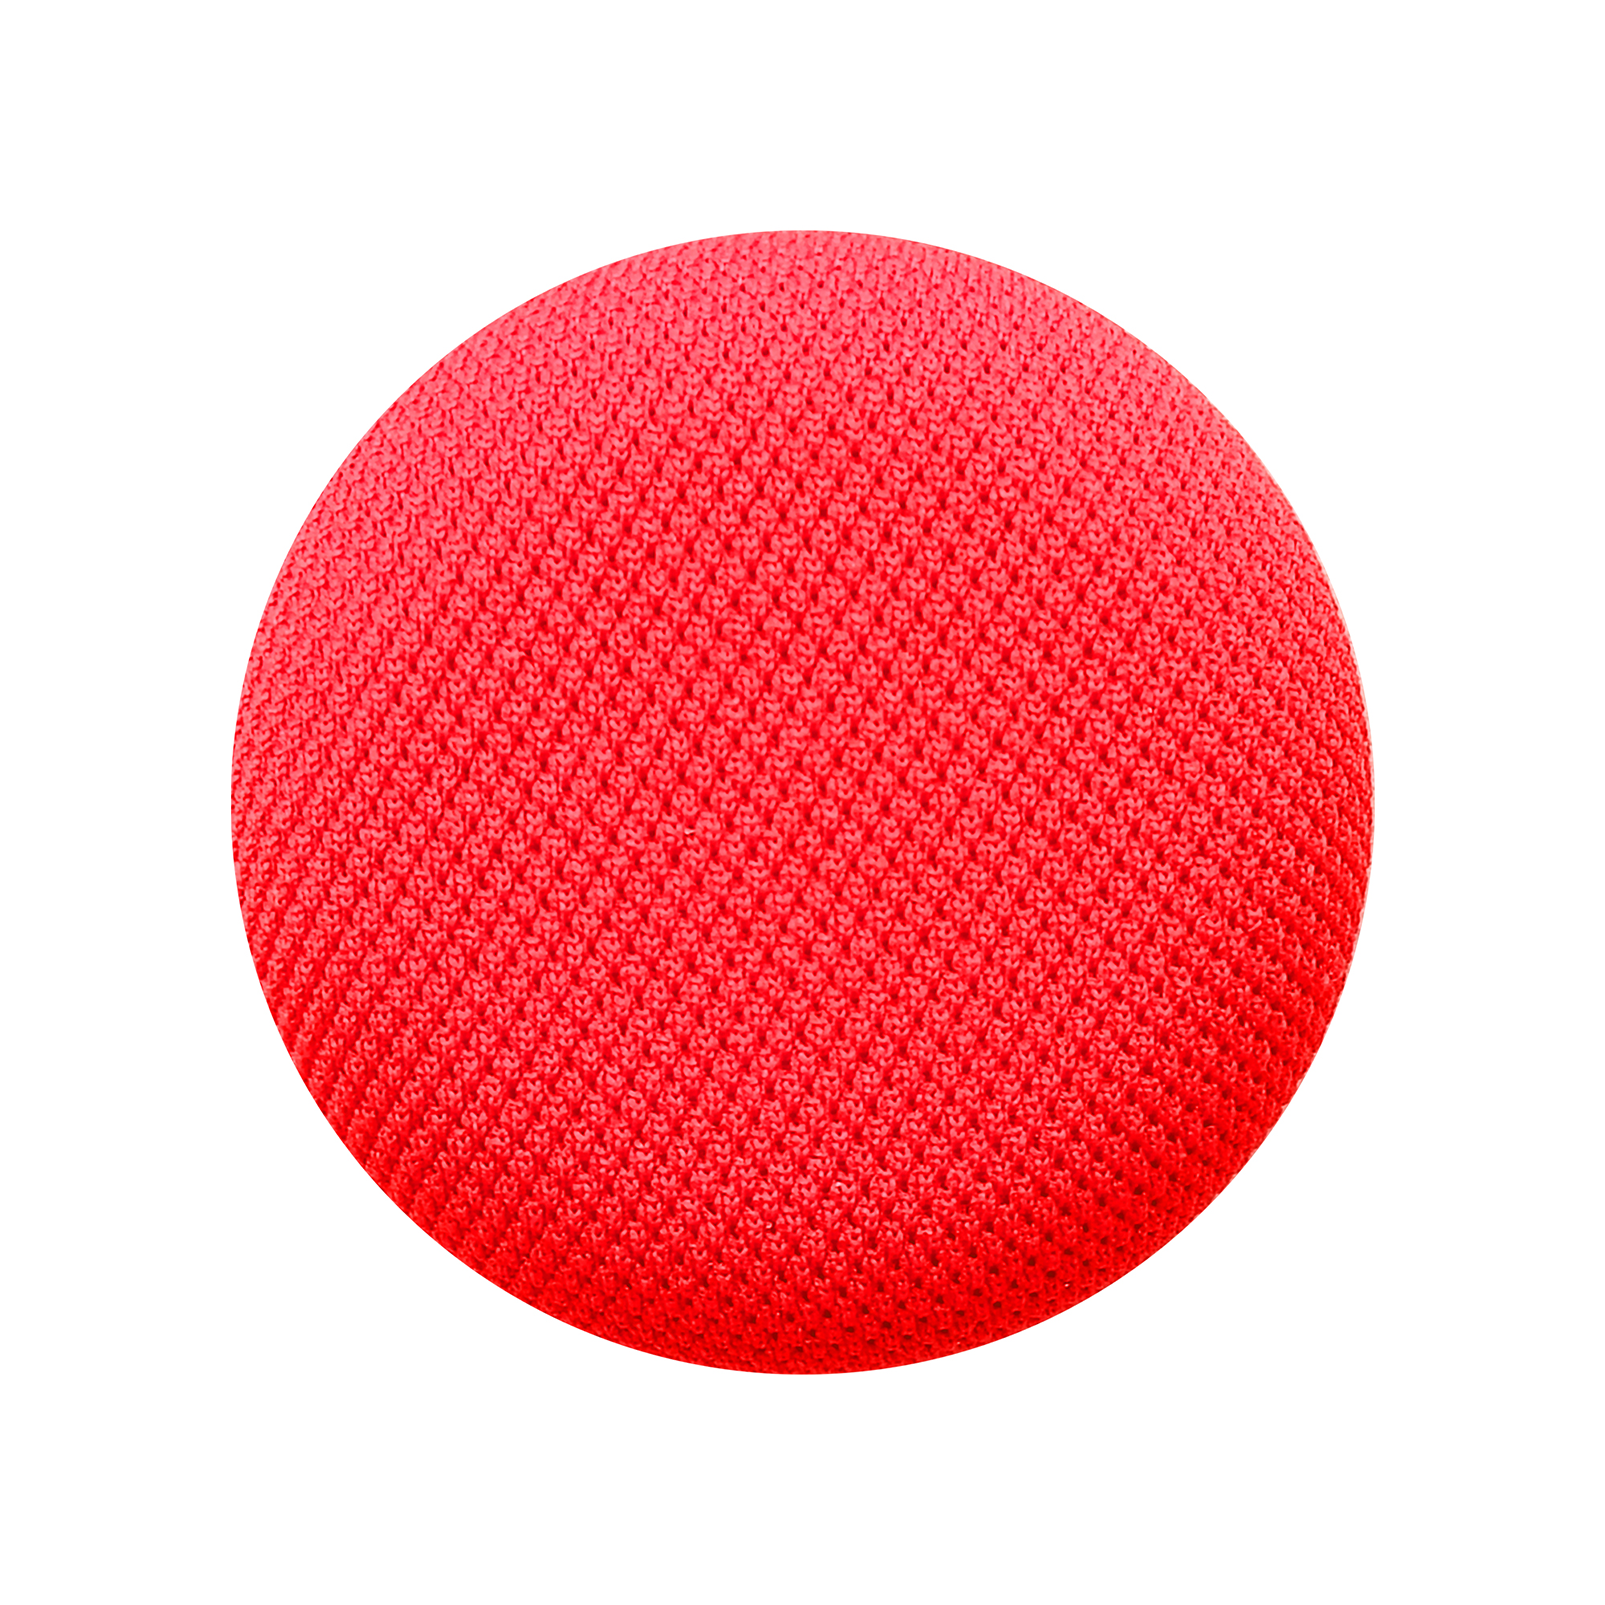 INFINITY FUZE PINT - Red - Portable Wireless Speakers - Back